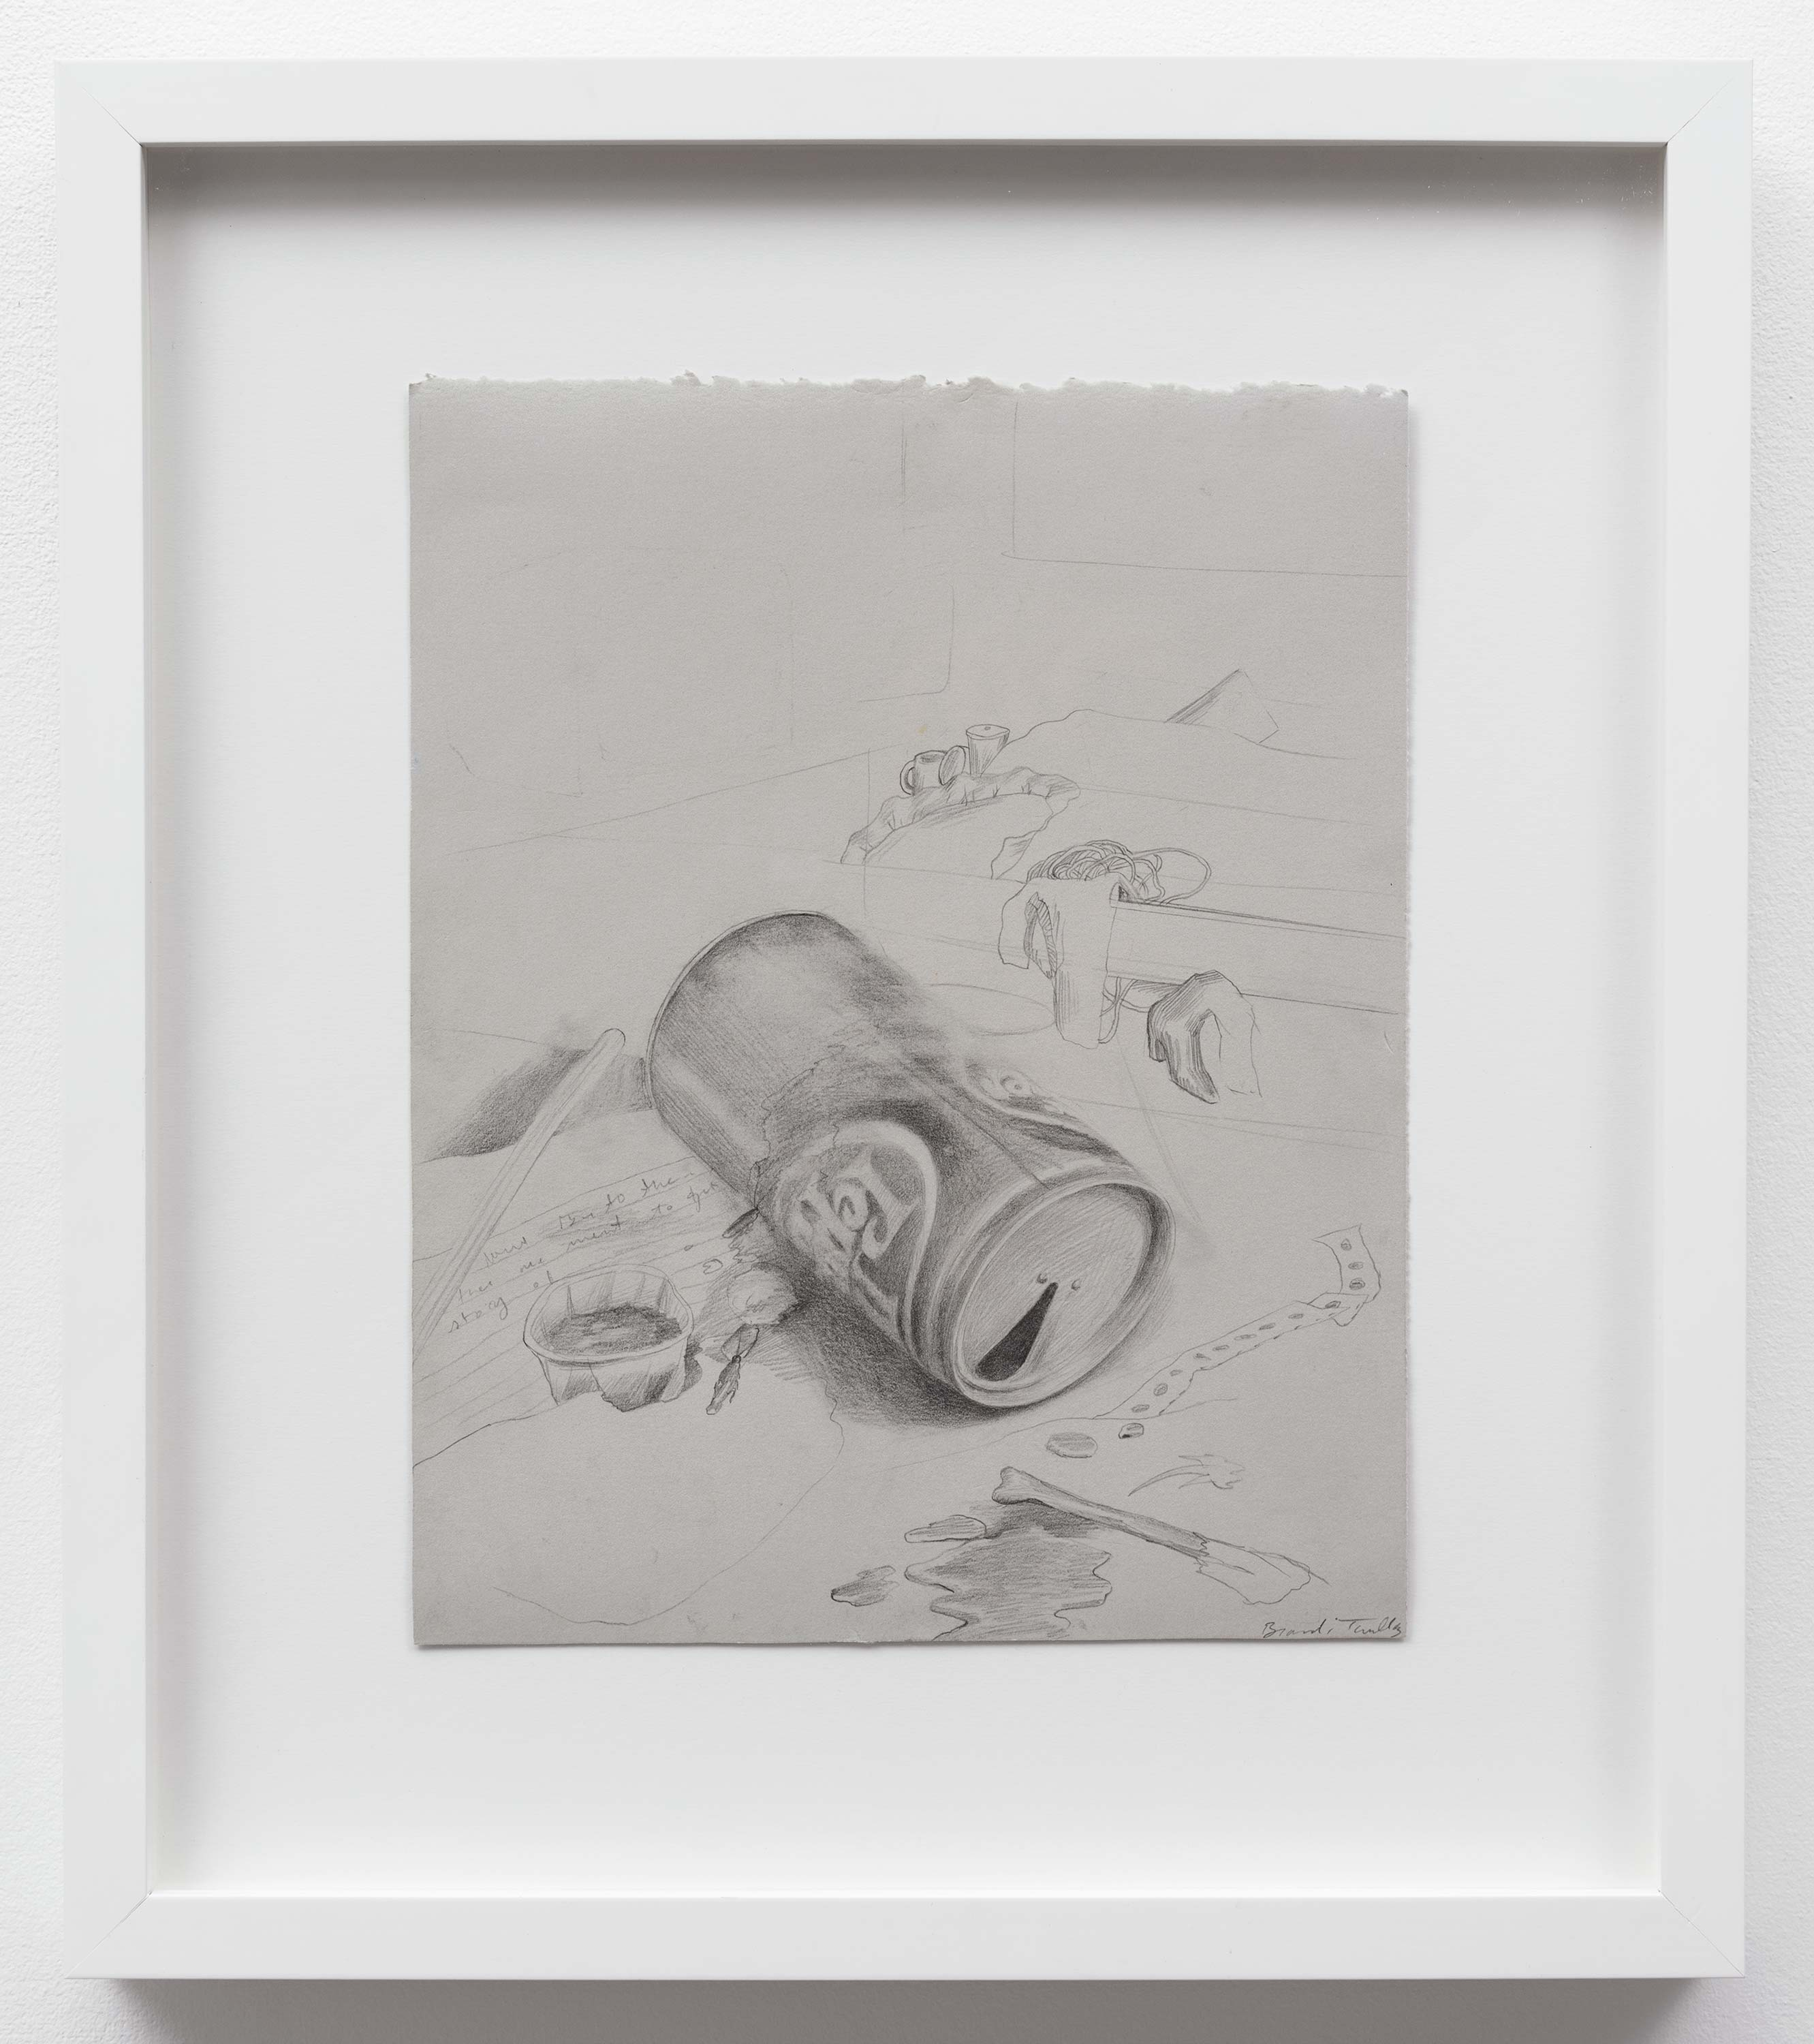 Brandi Twilley<br>Dr. Pepper<br>2014<br>Graphite on gray paper<br>9 x 11.25 inches (23 x 26.5 cm)